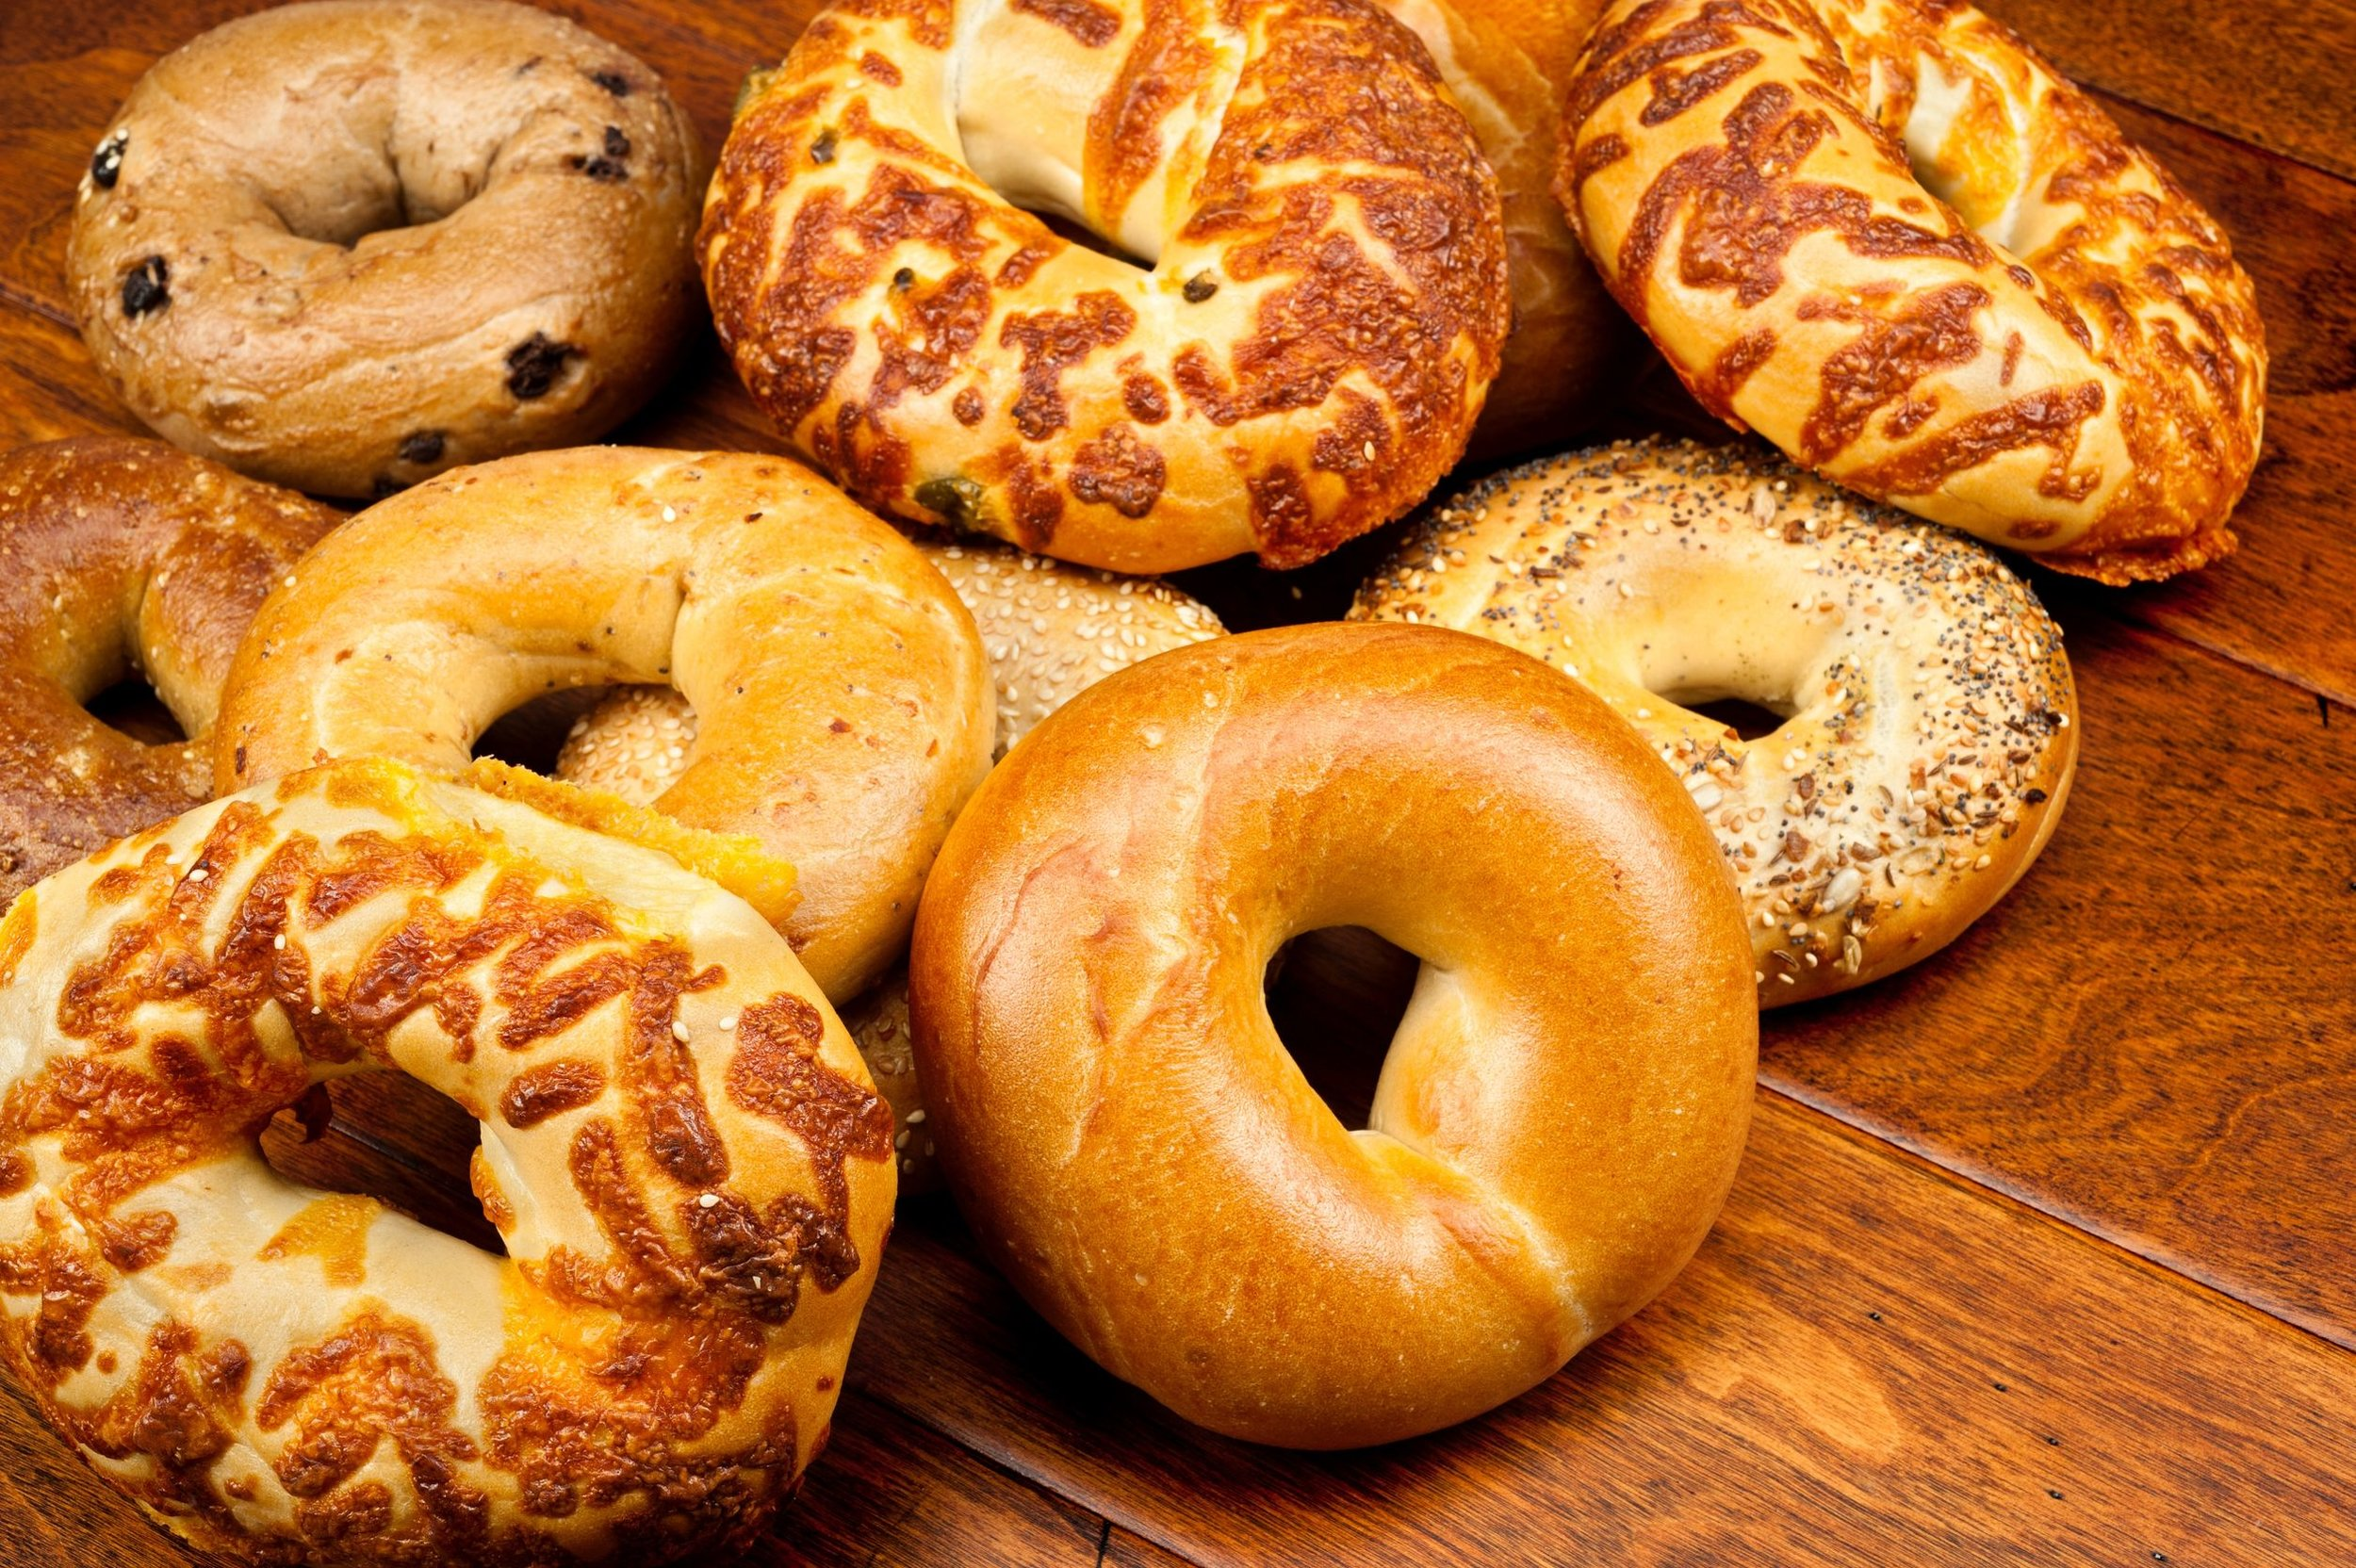 Fresh baked bagels daily